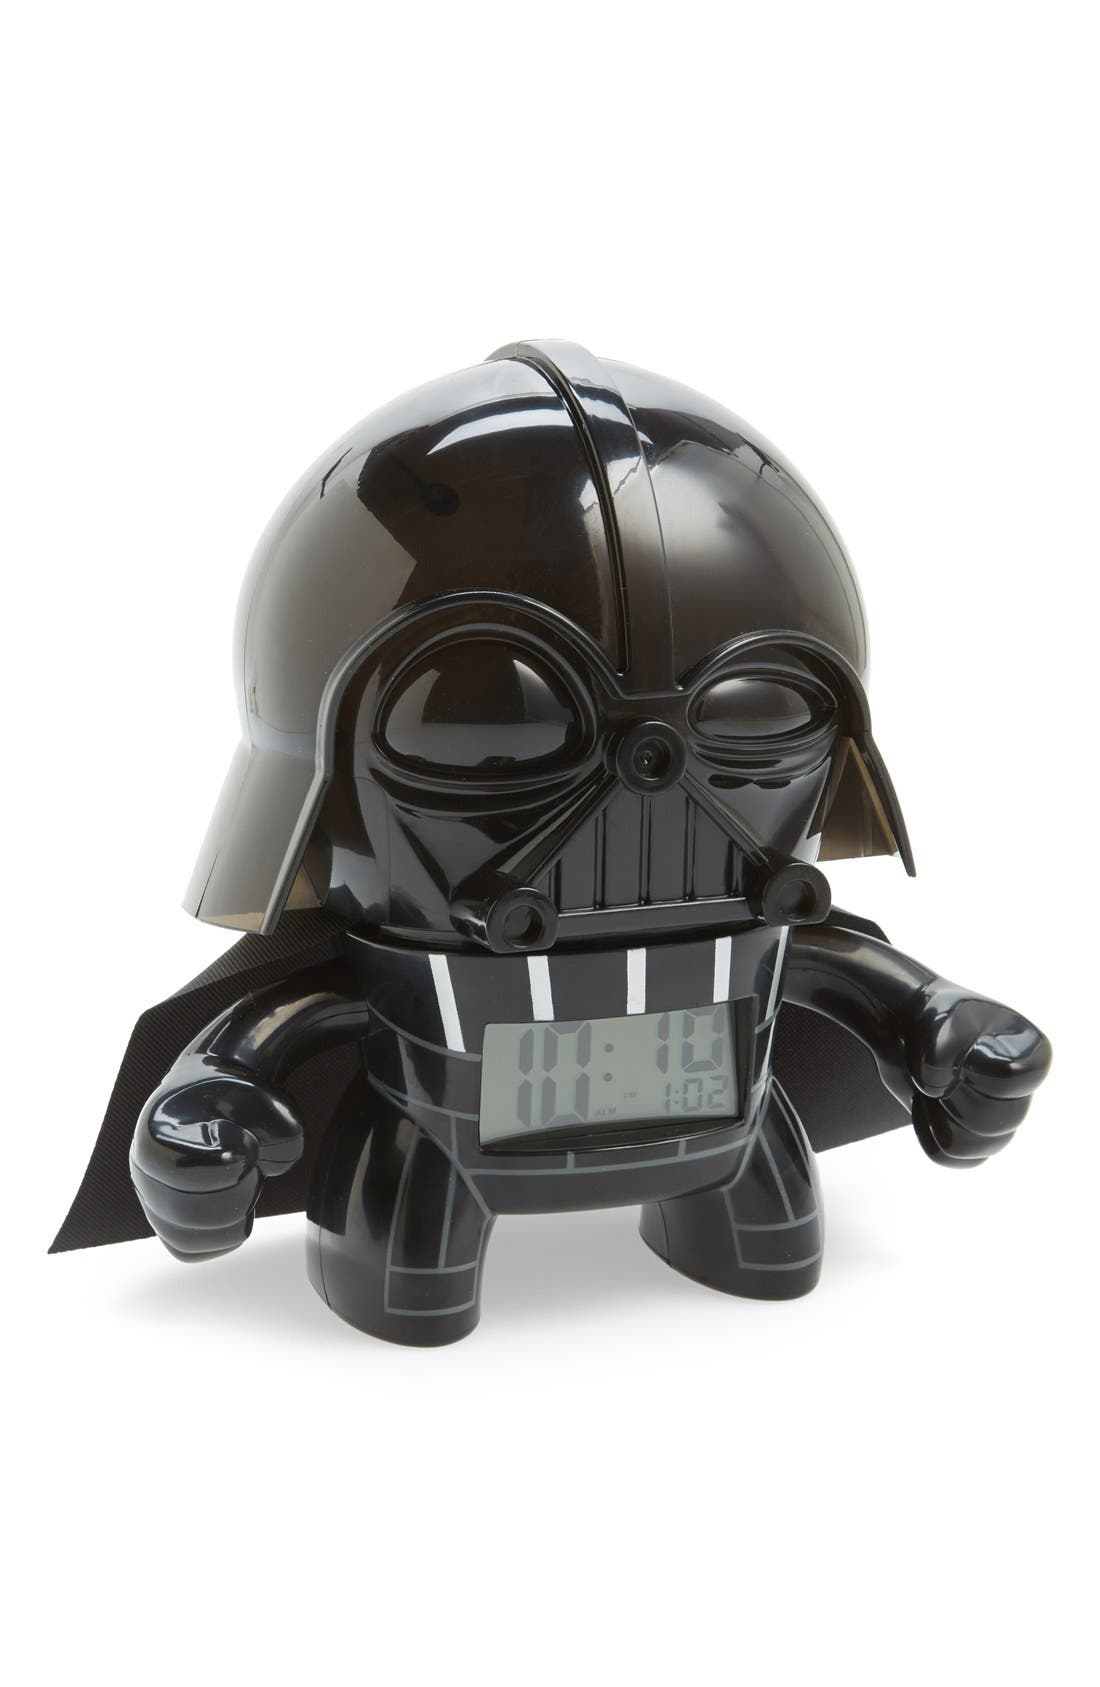 BULB BOTZ 'Star Wars™ - Darth Vader' Light-Up